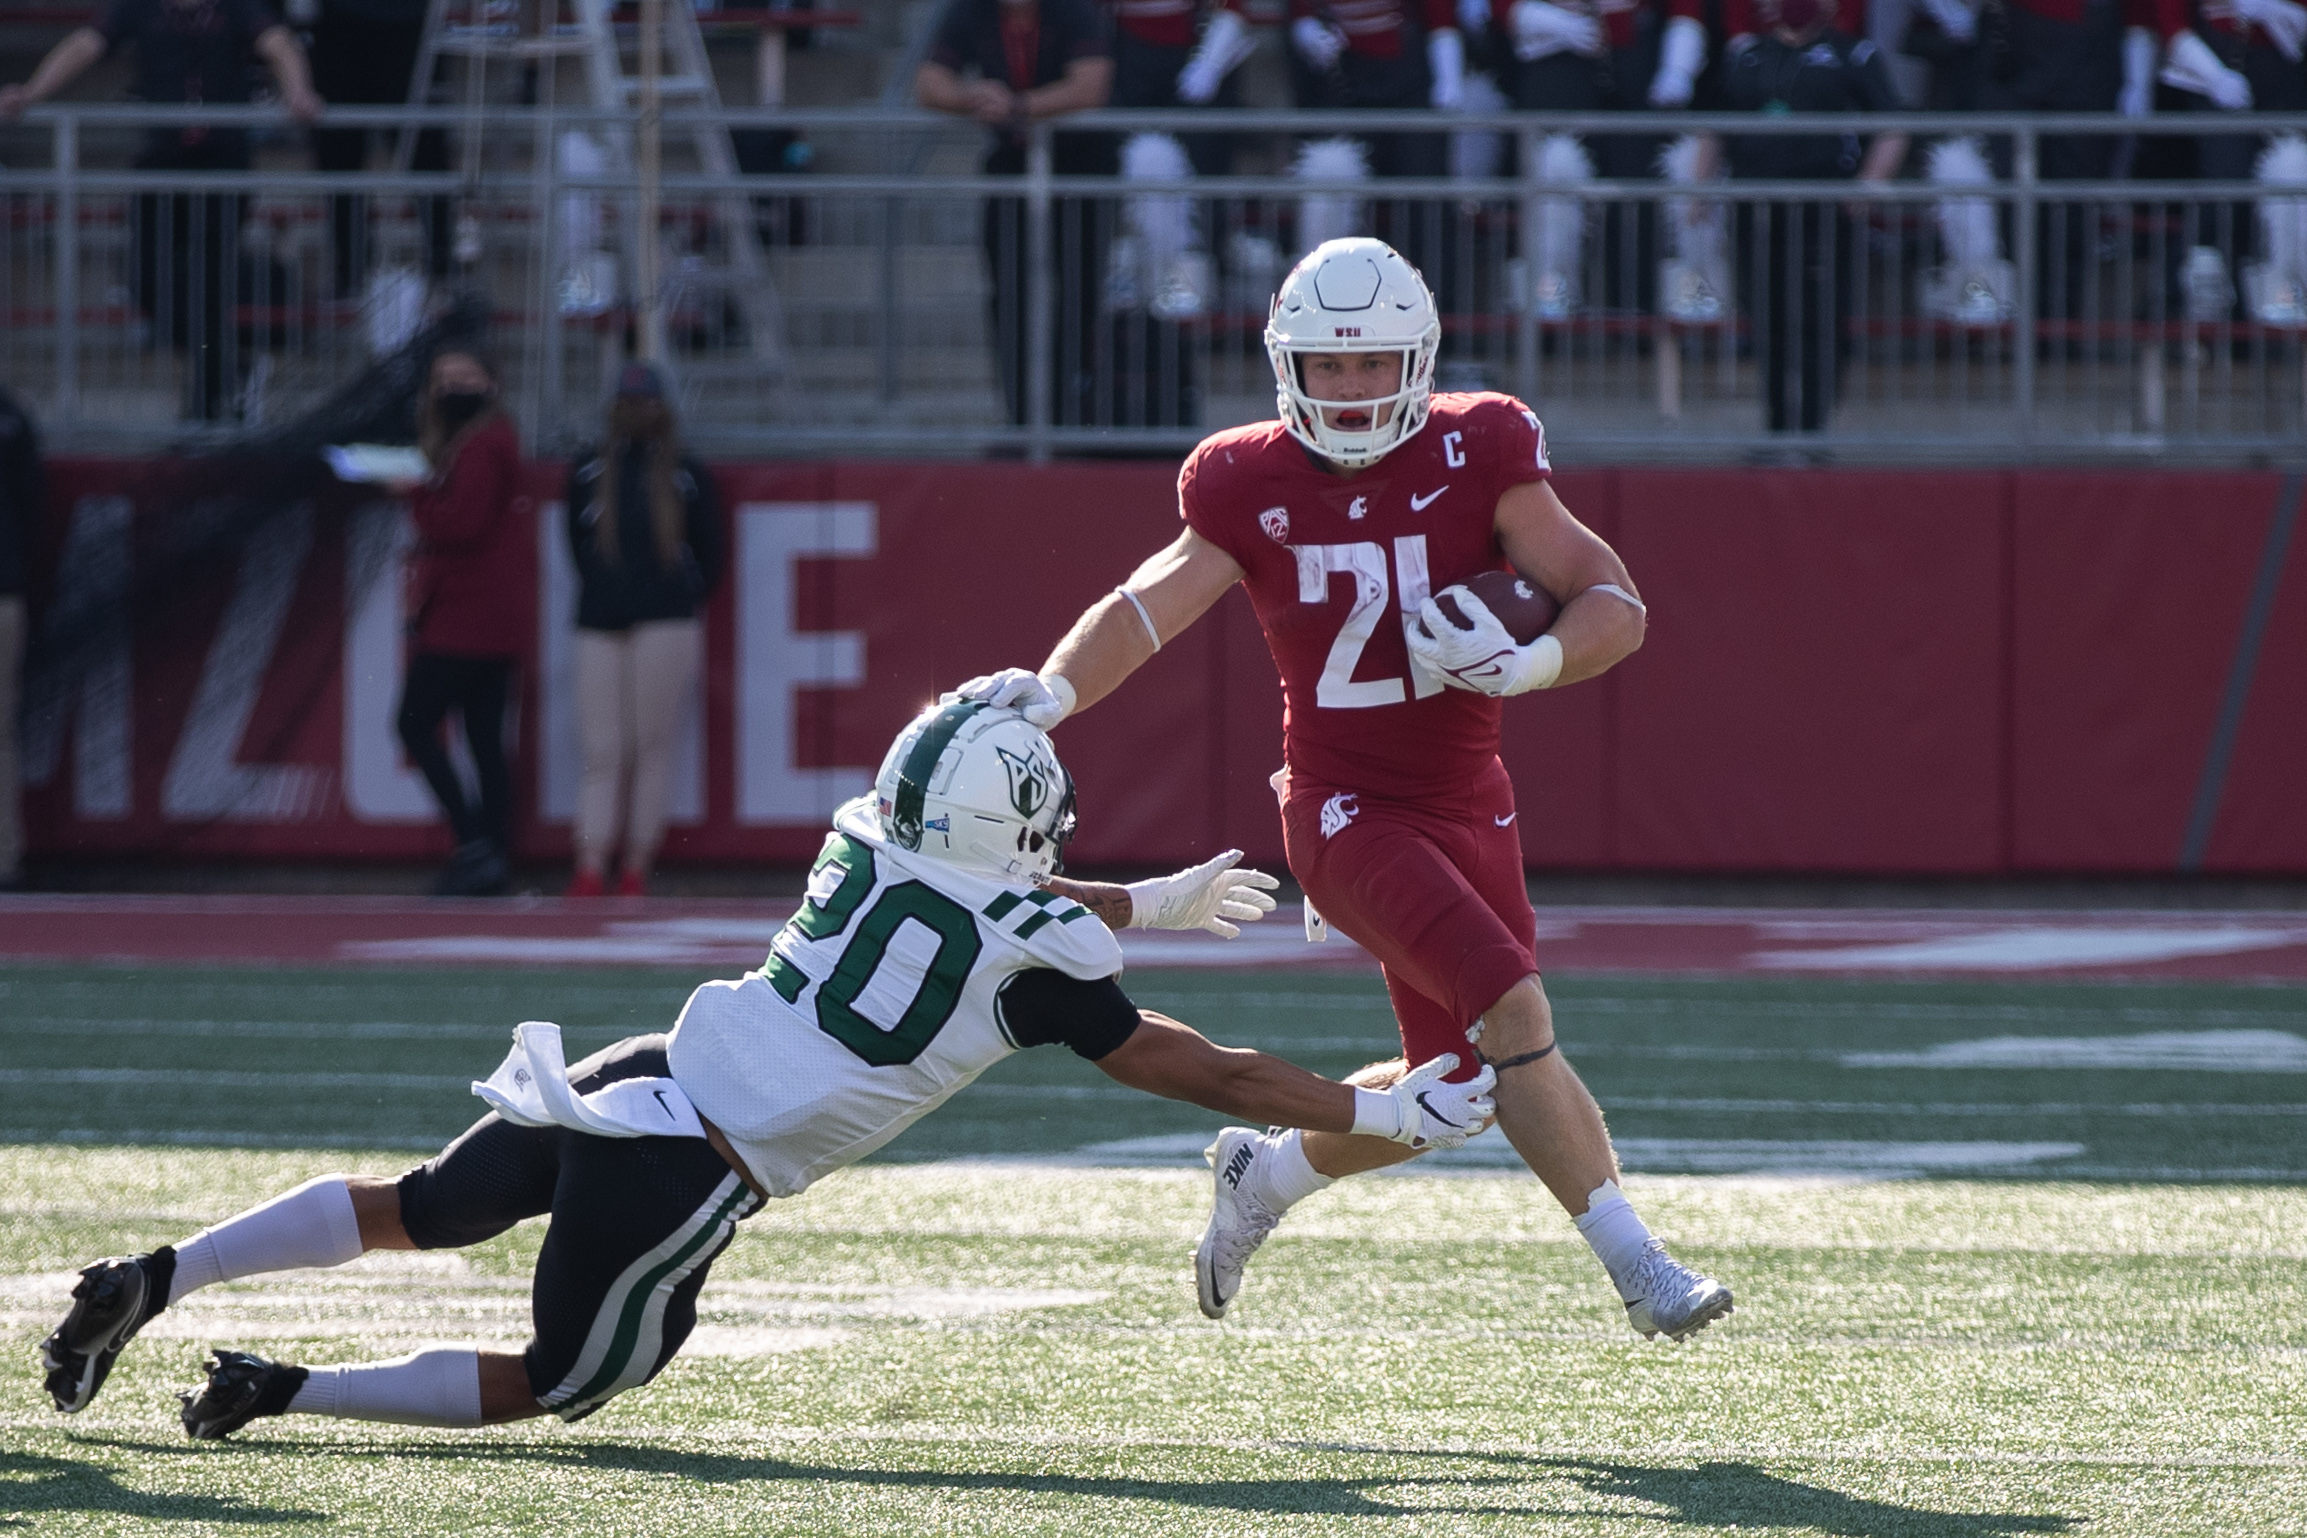 PULLMAN, WA - SEPTEMBER 11: Washington State running back Max Borghi (21) pushes down a defender during the first half of a non-conference matchup between the Portland State Vikings and the Washington State Cougars on September 11, 2021, at Martin Stadium in Pullman, WA.